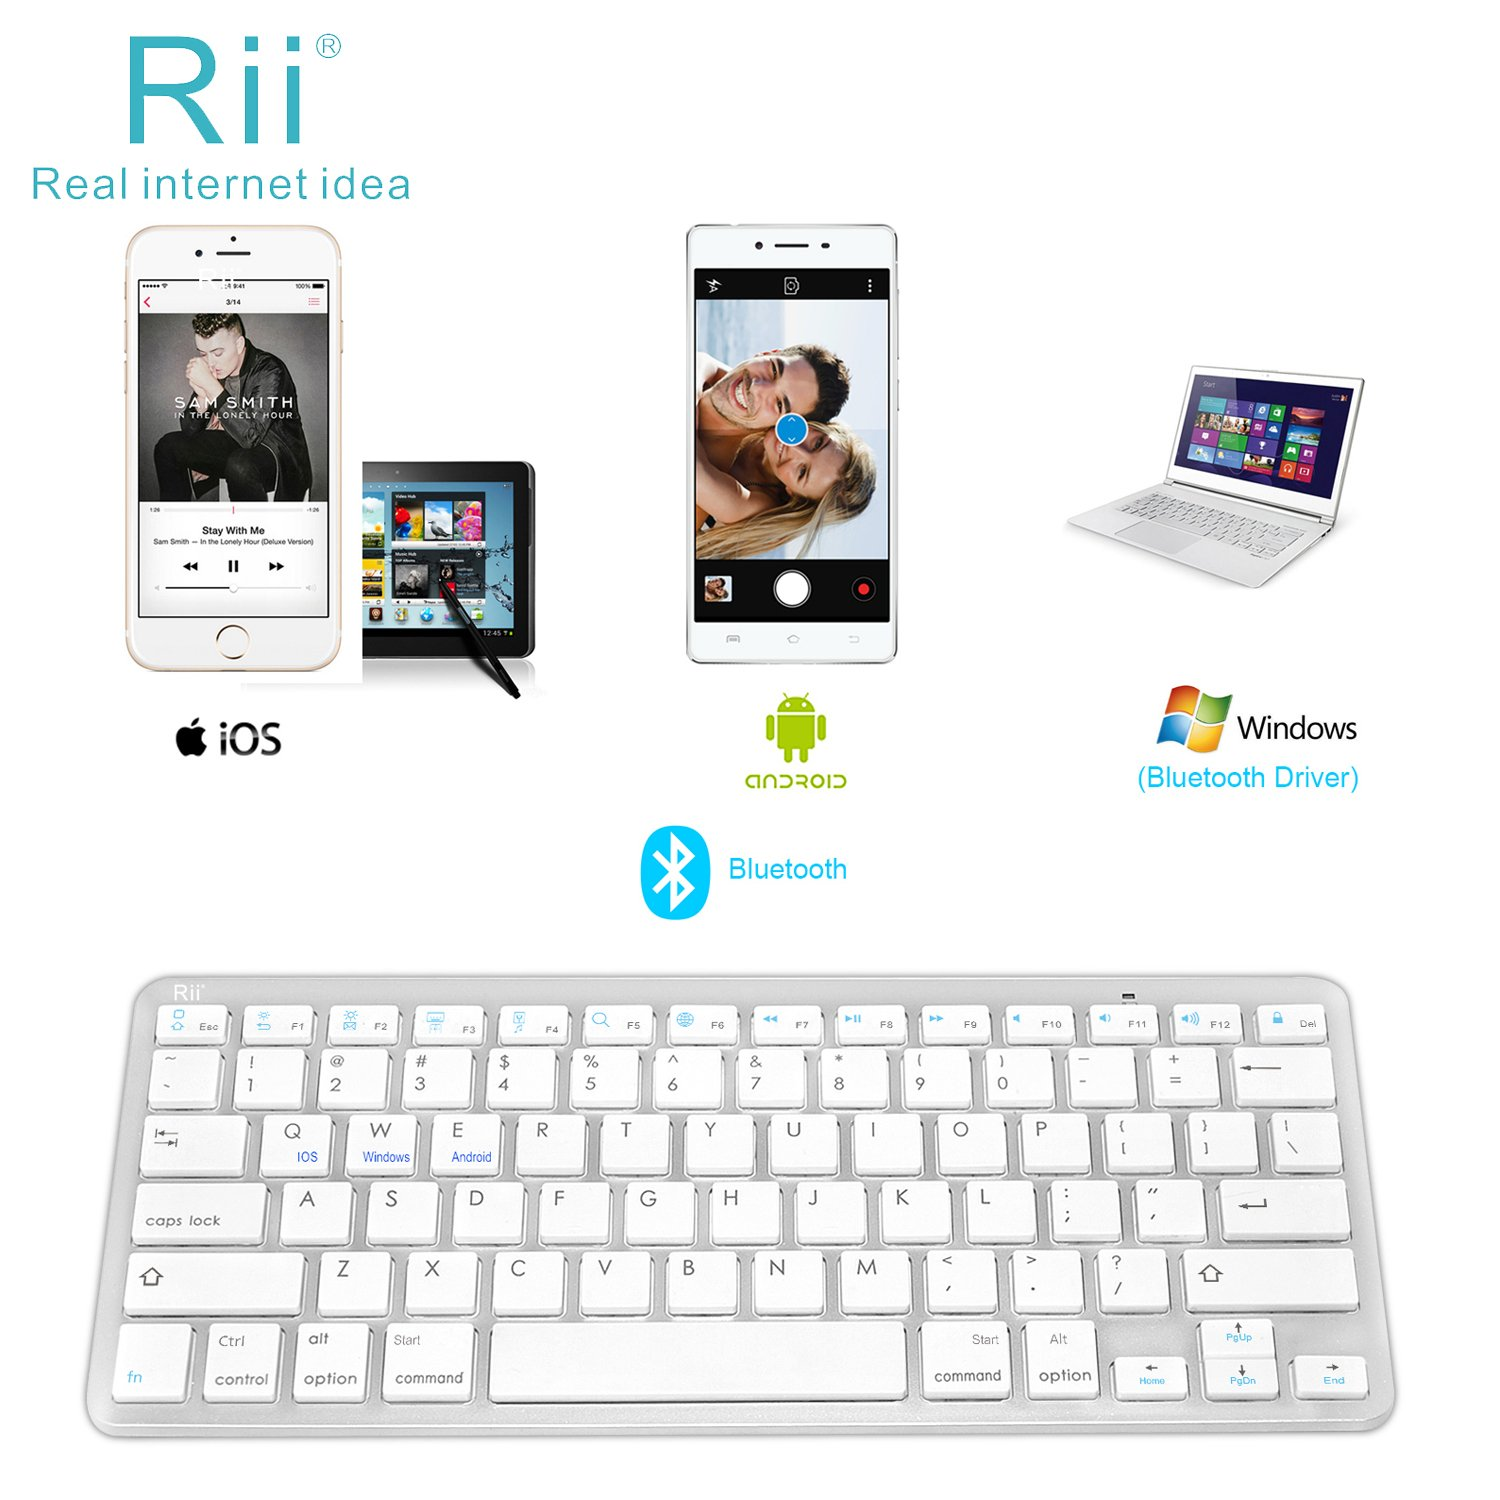 Rii BT09 Ultra Slim Portable Wireless Bluetooth Keyboard for Windows Devices ipad Mini iPhone MacBook Pro Tablets PC Android Tablets Samsung Smart TV Box(White) Riitek 4958086